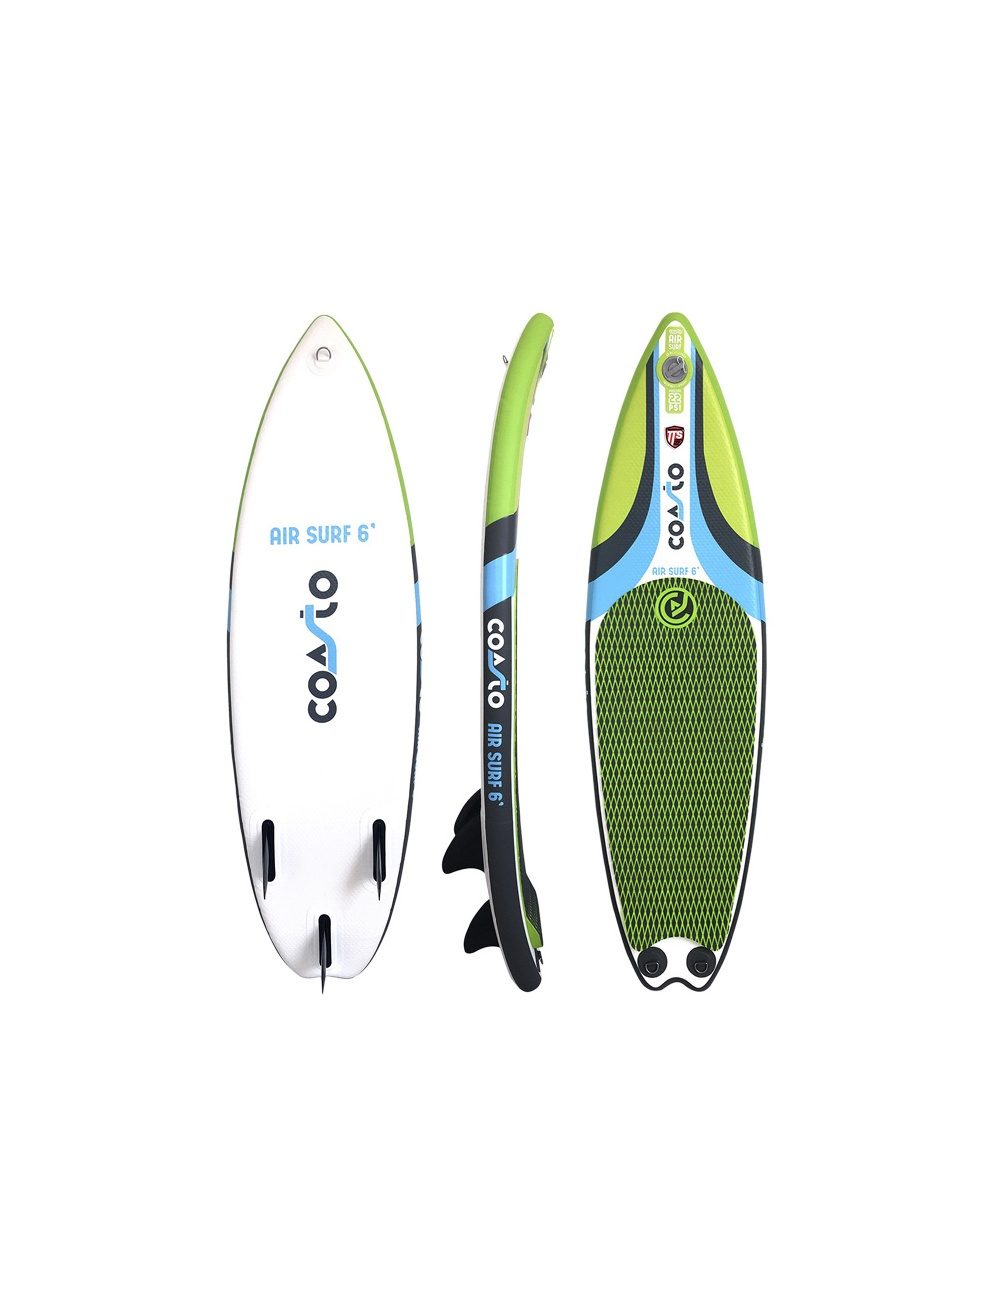 Tabla SUP hinchable Coasto Airsurf 6' con quillas fijas